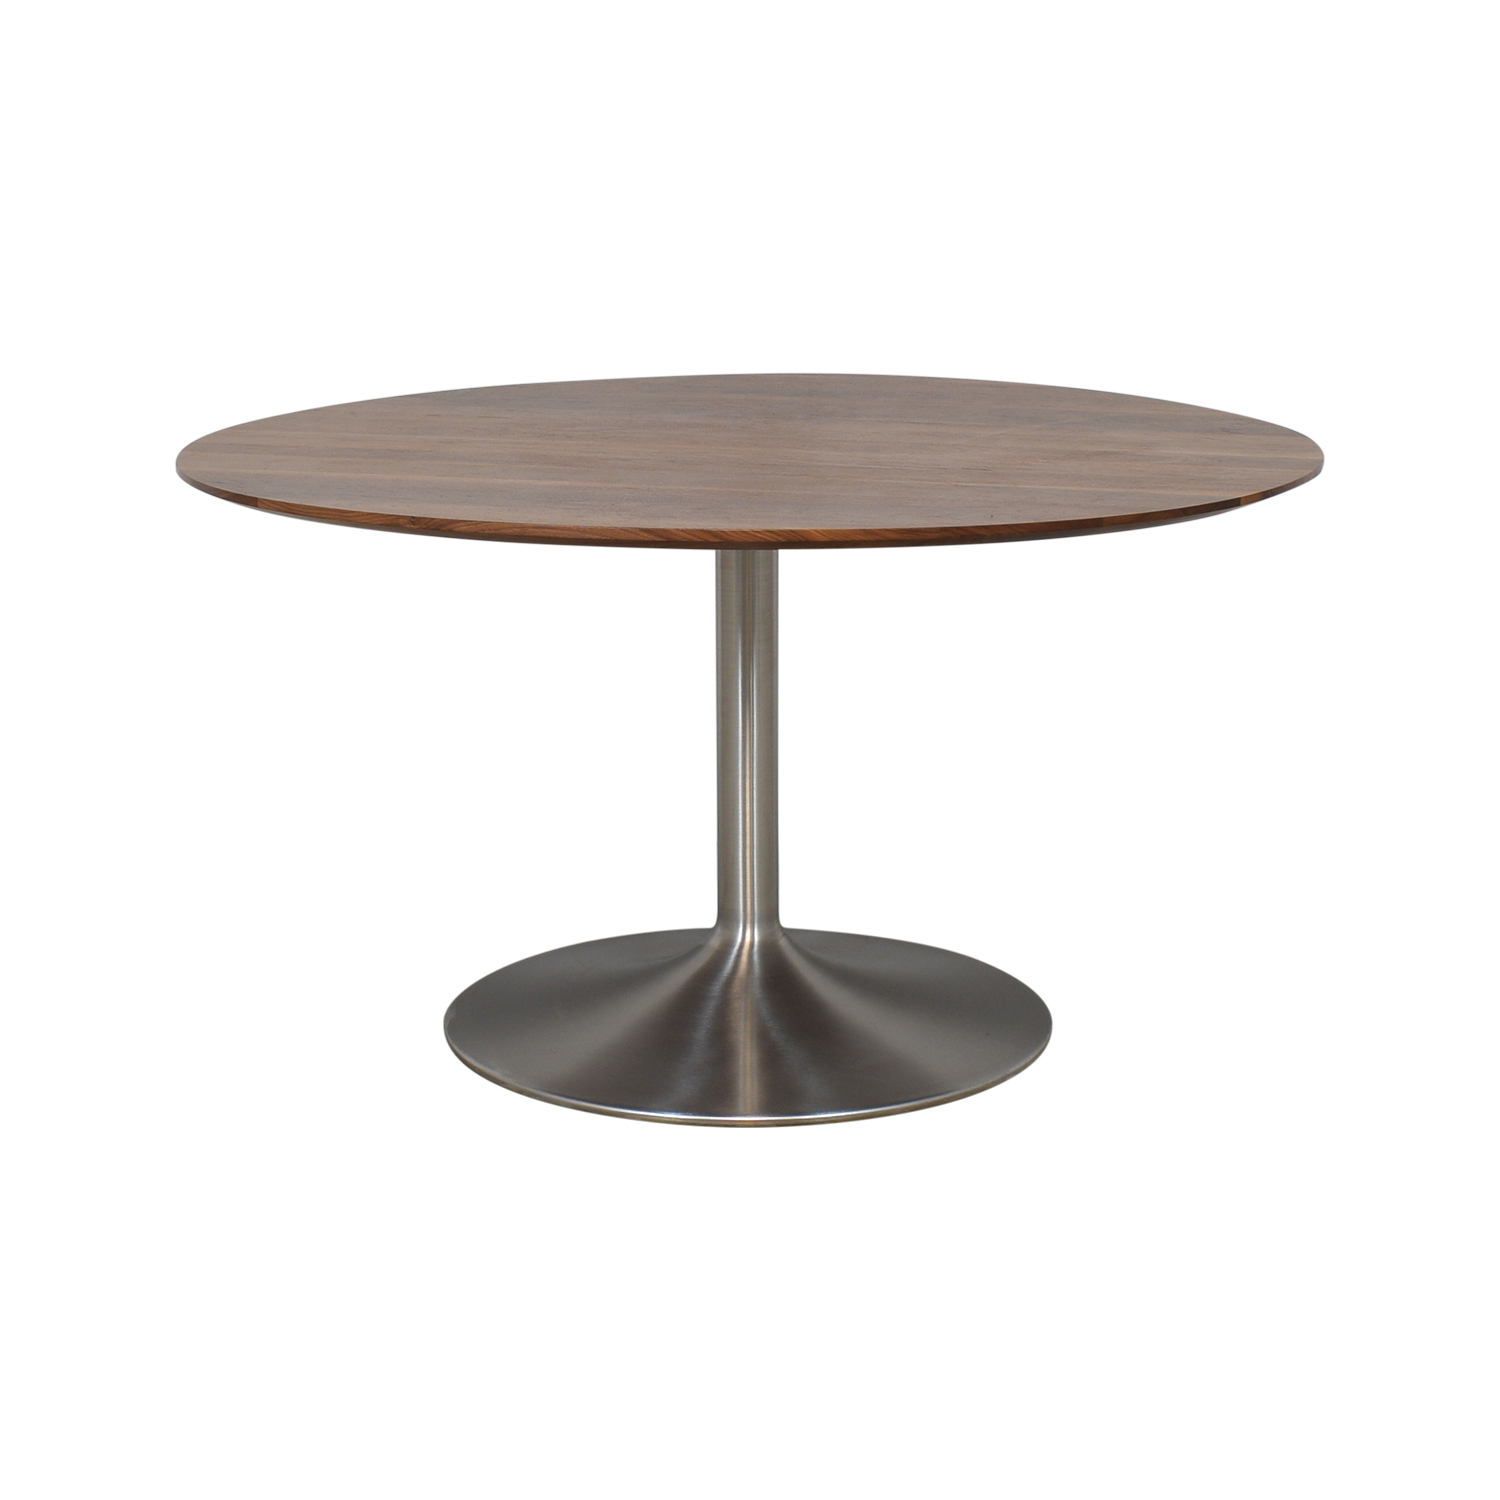 Room & Board Room & Board Aria Round Dining Table price